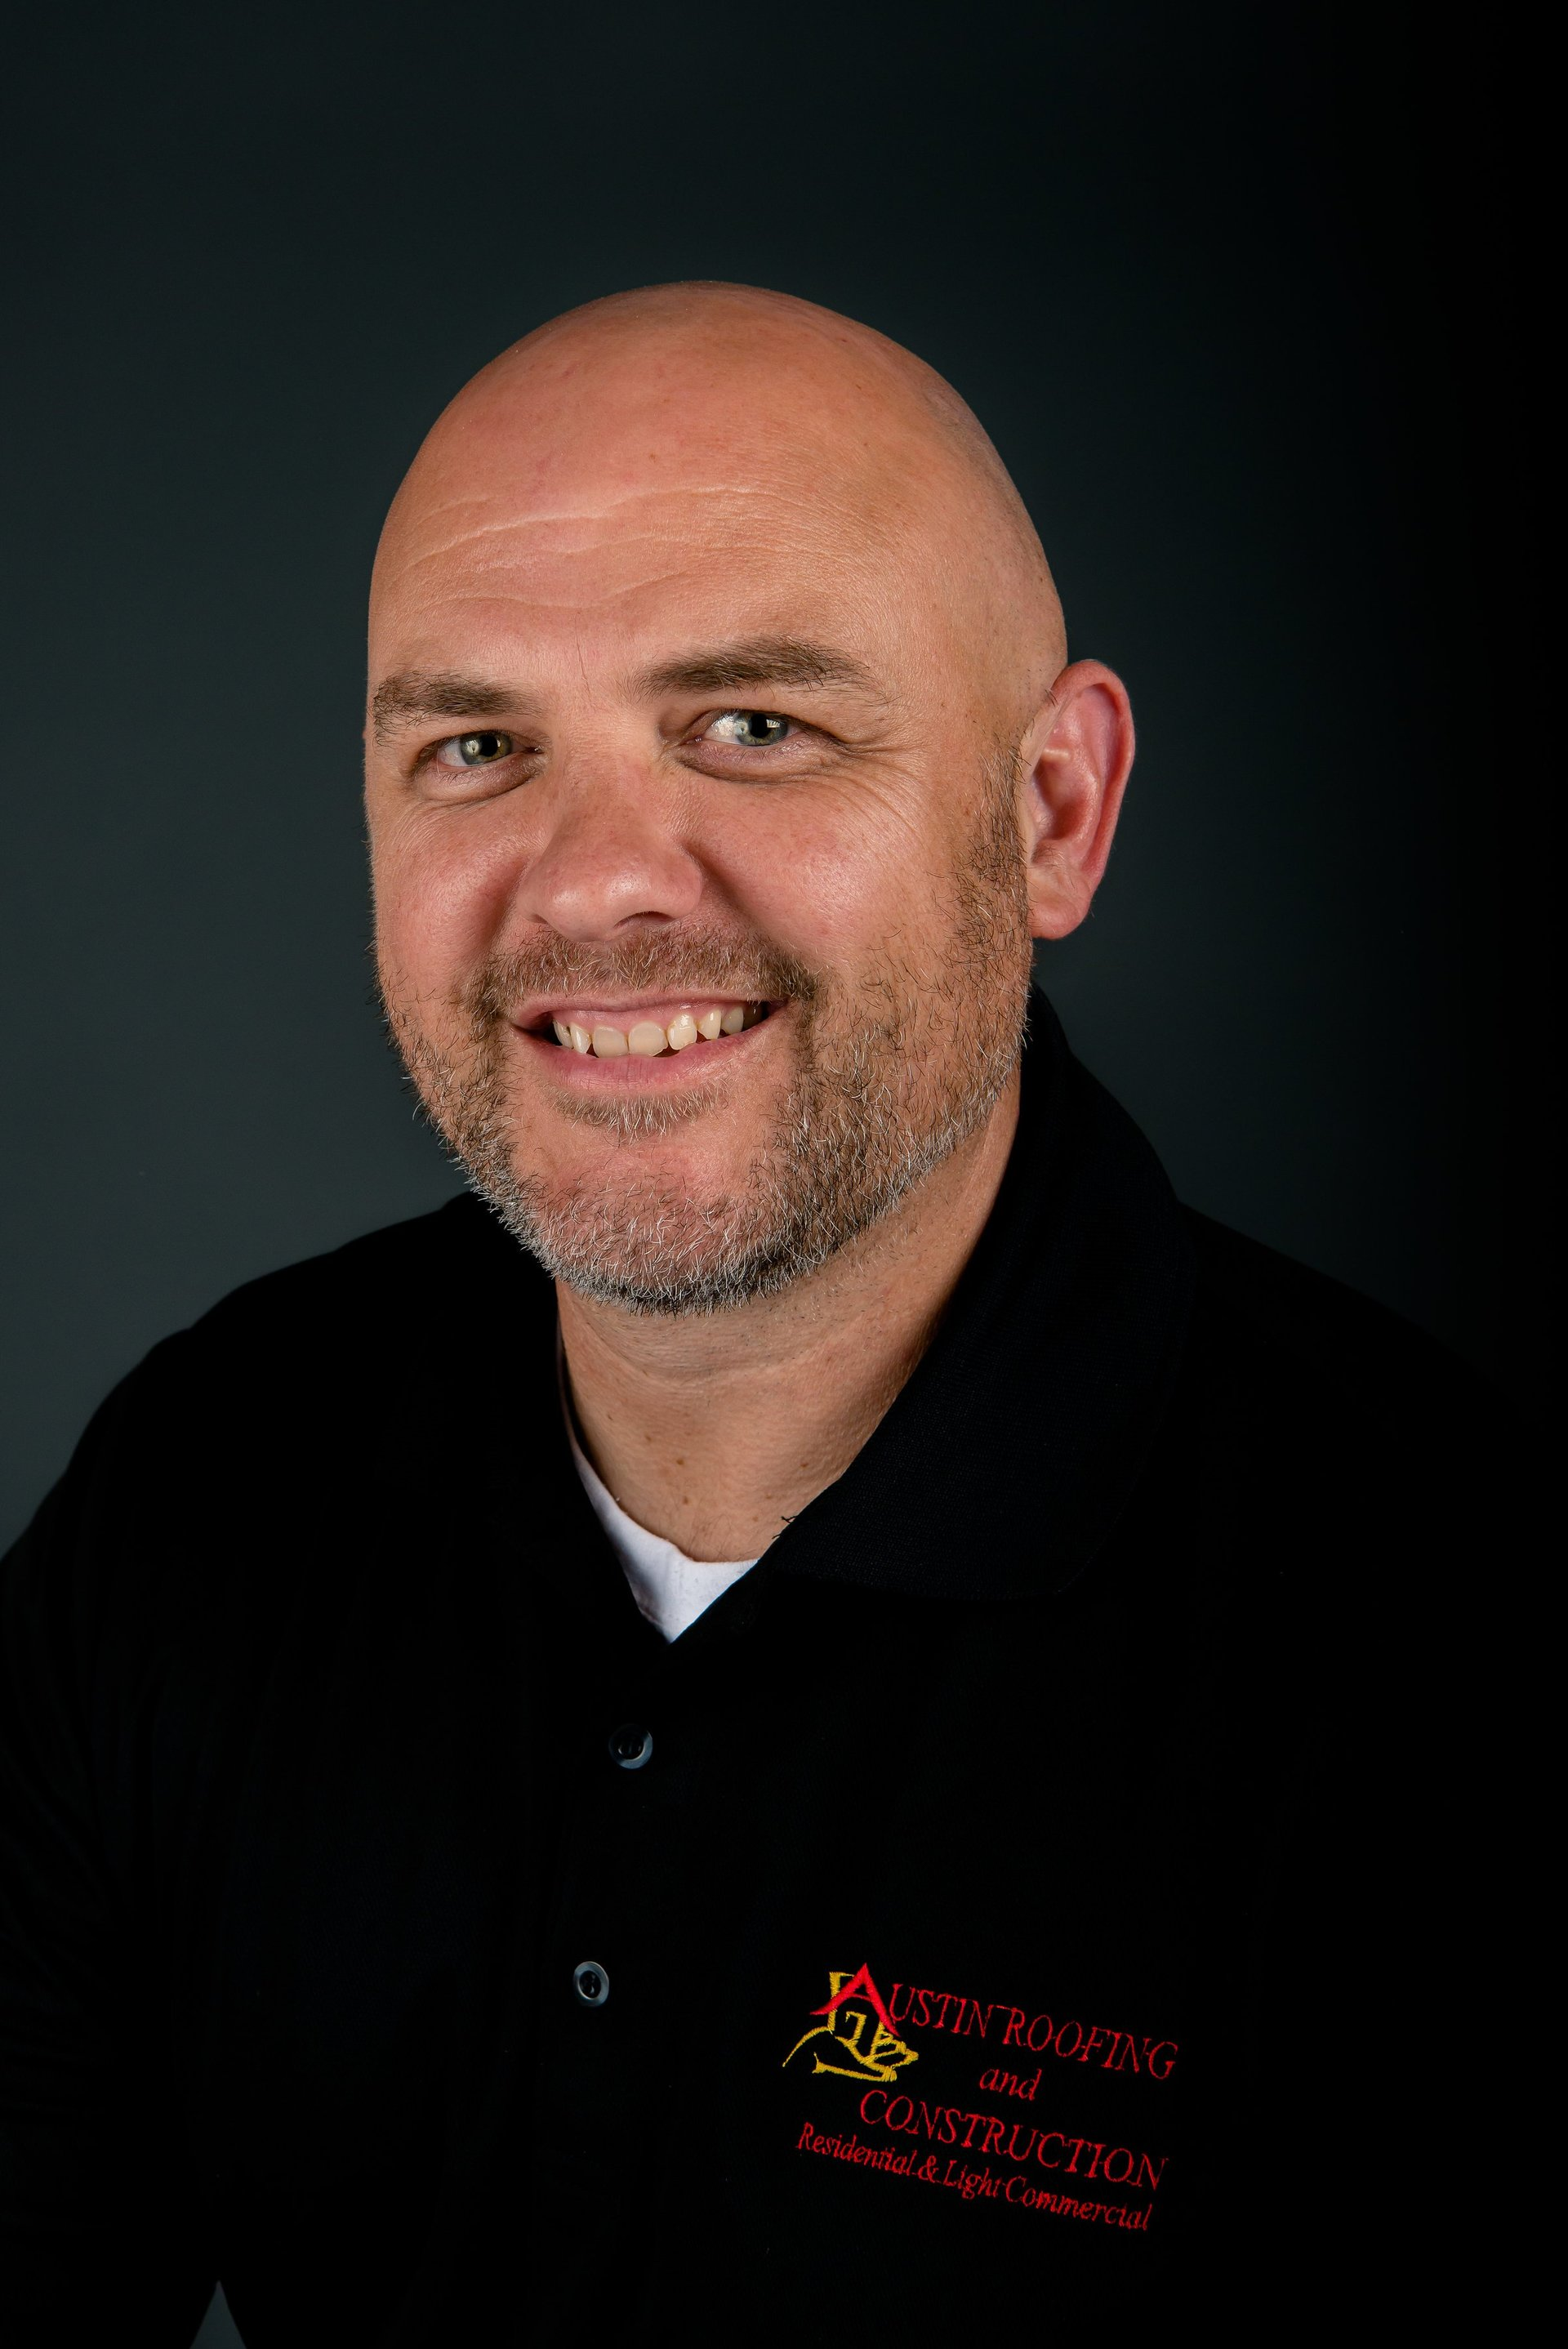 Estimator & Commercial Roofing Mastermind Austin Roofing and Construction